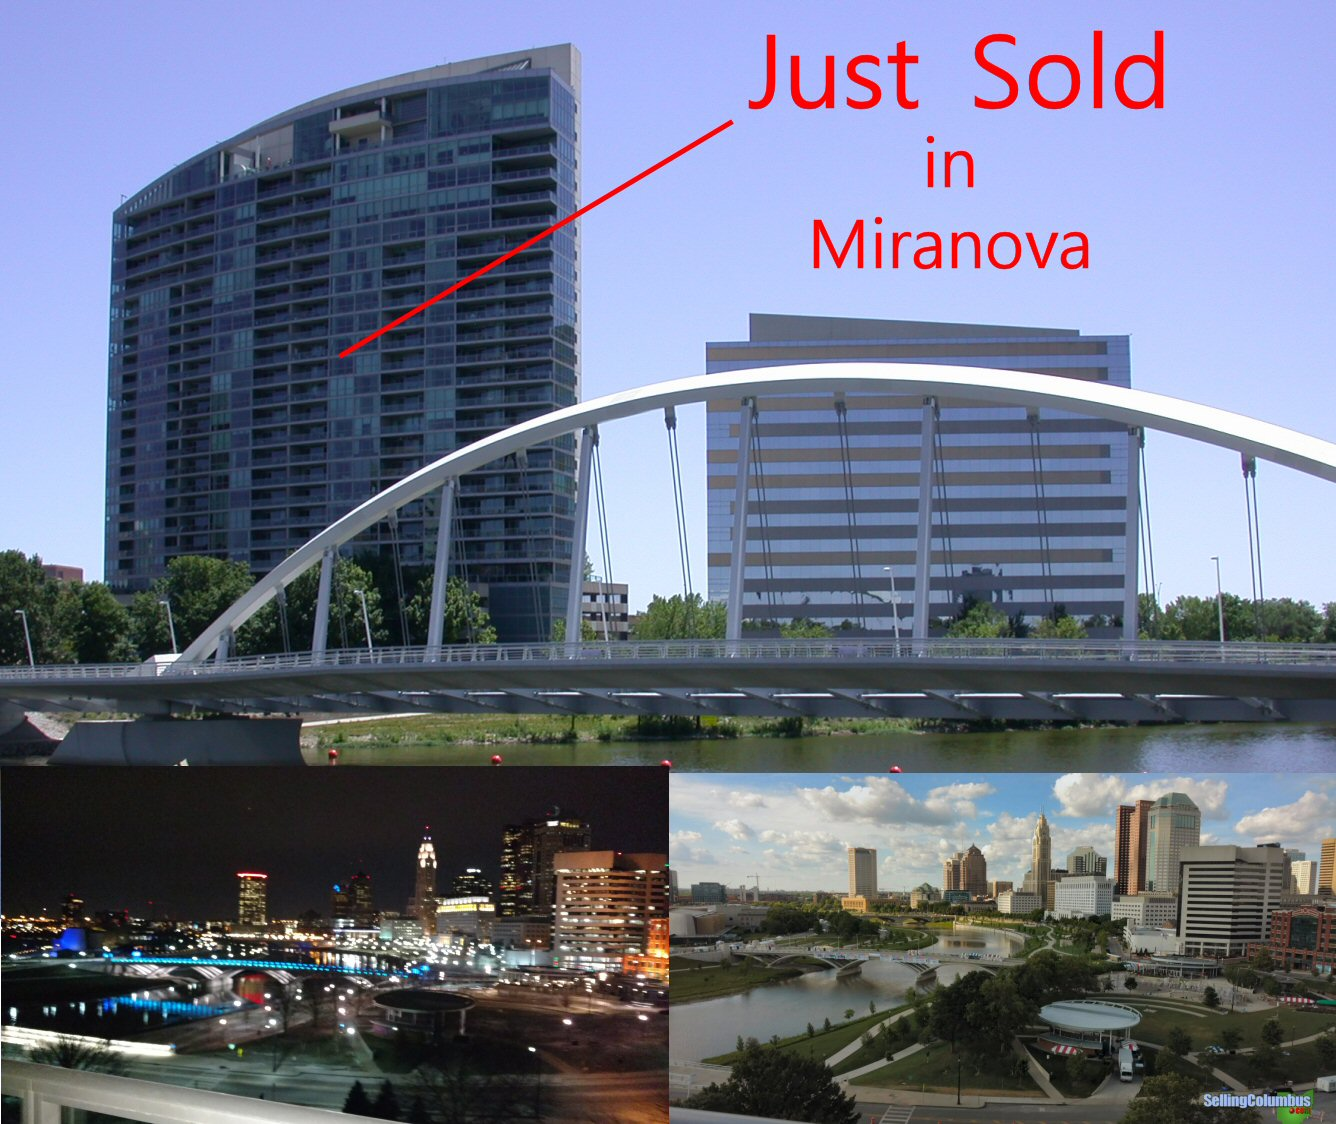 Just Sold in Miranova, downtown Columbus, 1 Miranova Place 1230, Columbus, OH 43215